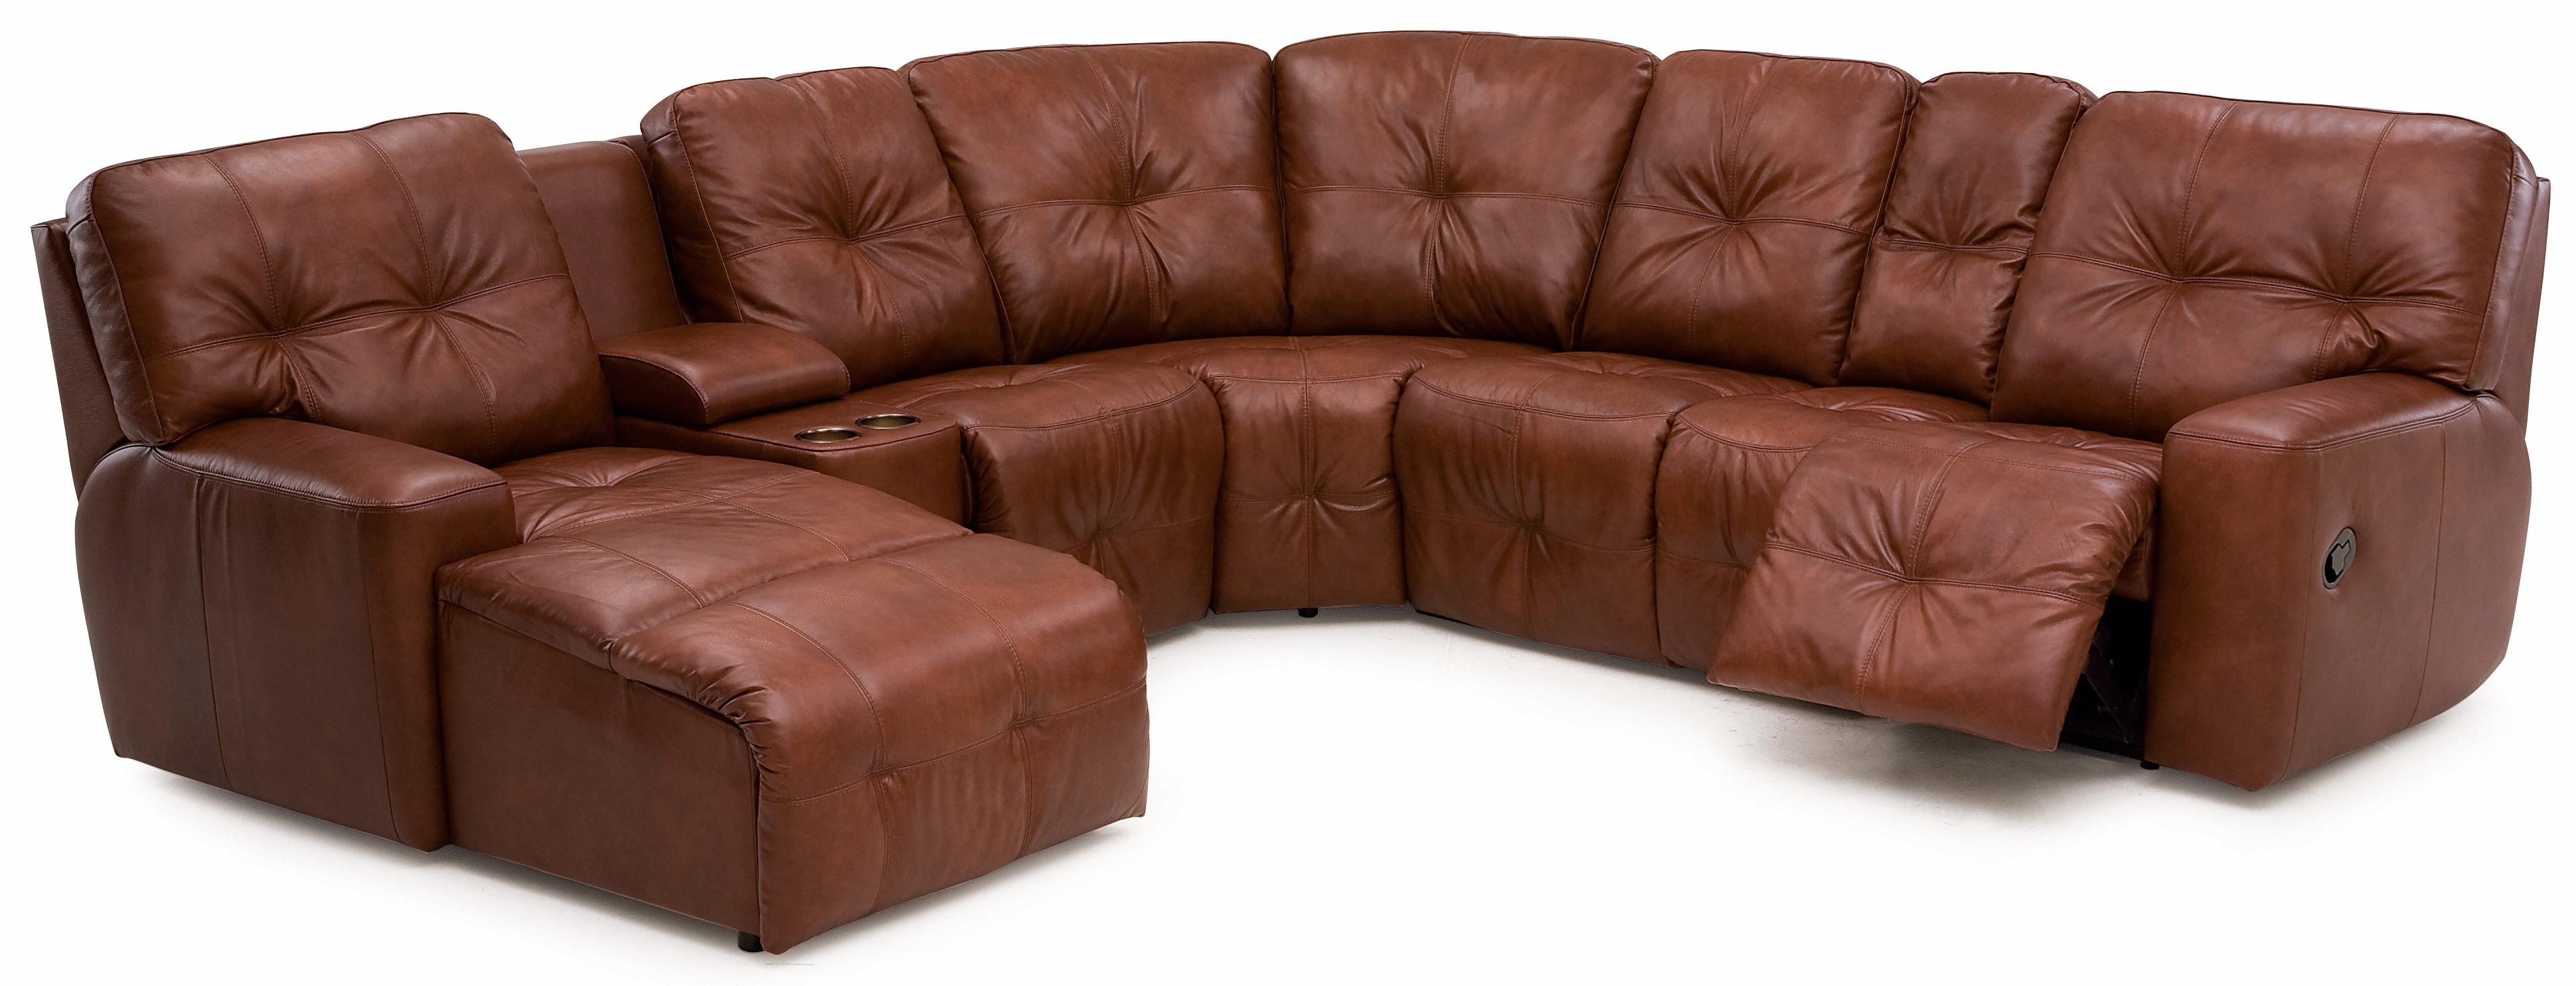 Palliser mystique transitional reclining sectional sofa with drop palliser mystique transitional reclining sectional sofa with drop down table and cupholder console geotapseo Choice Image